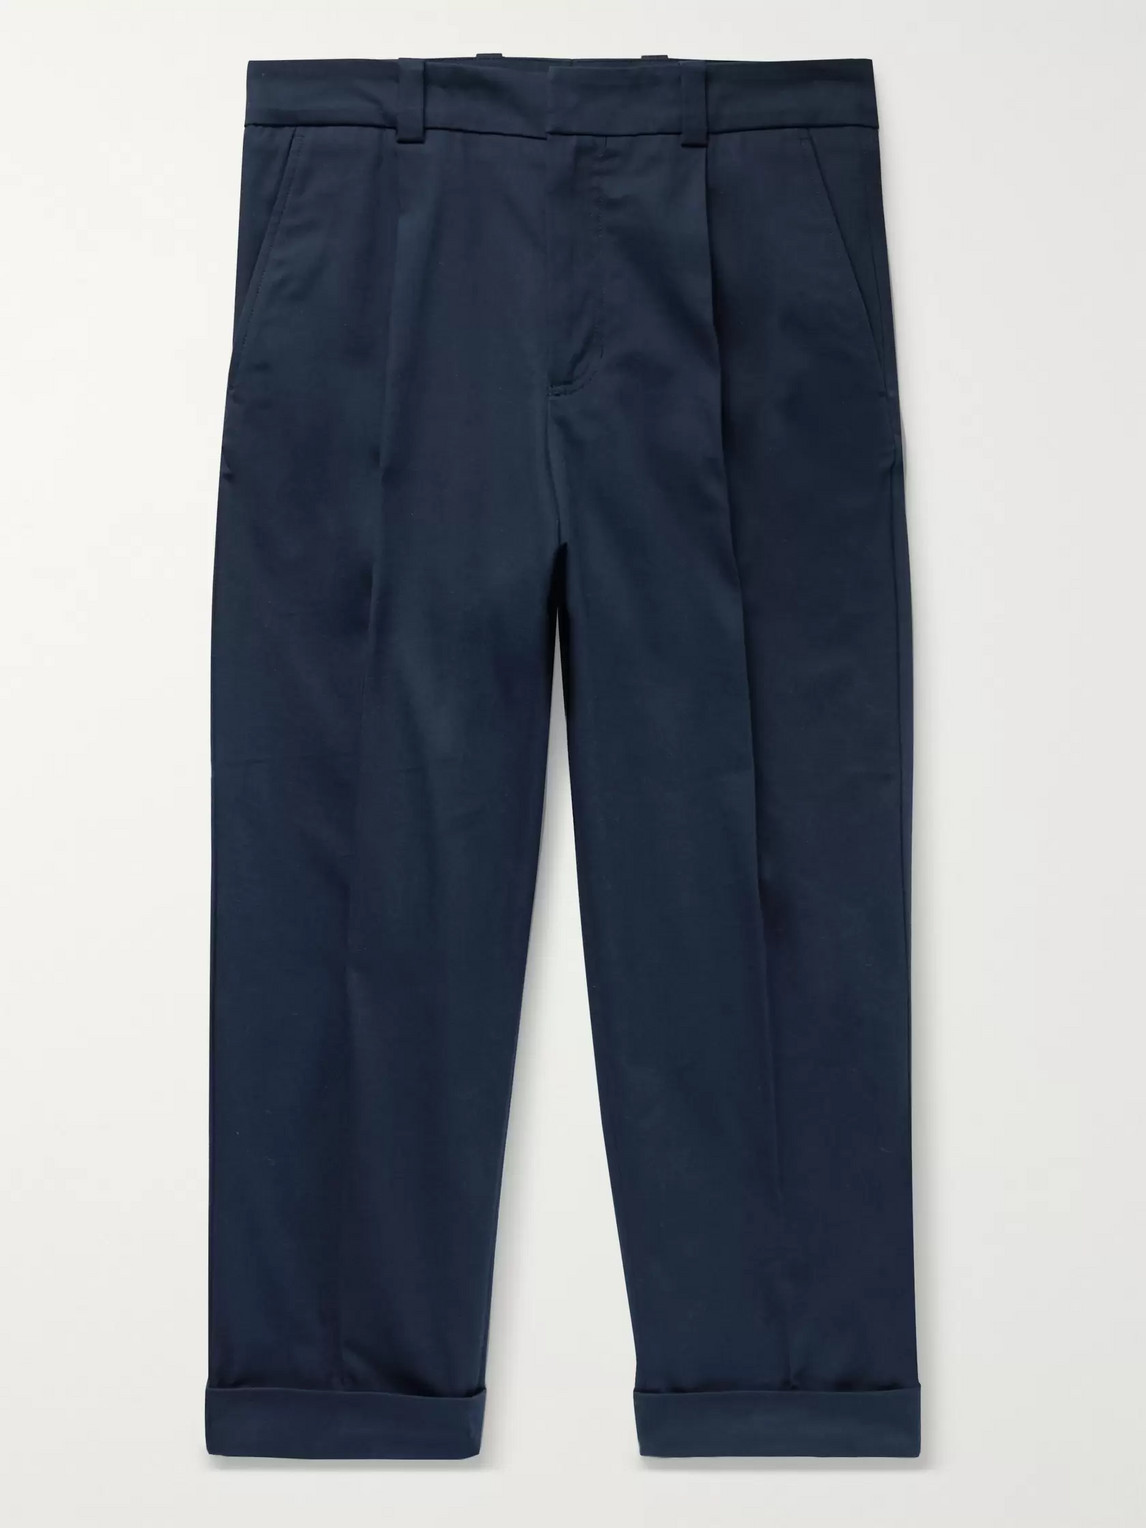 acne studios - pierre cropped tapered pleated stretch-cotton trousers - men - blue